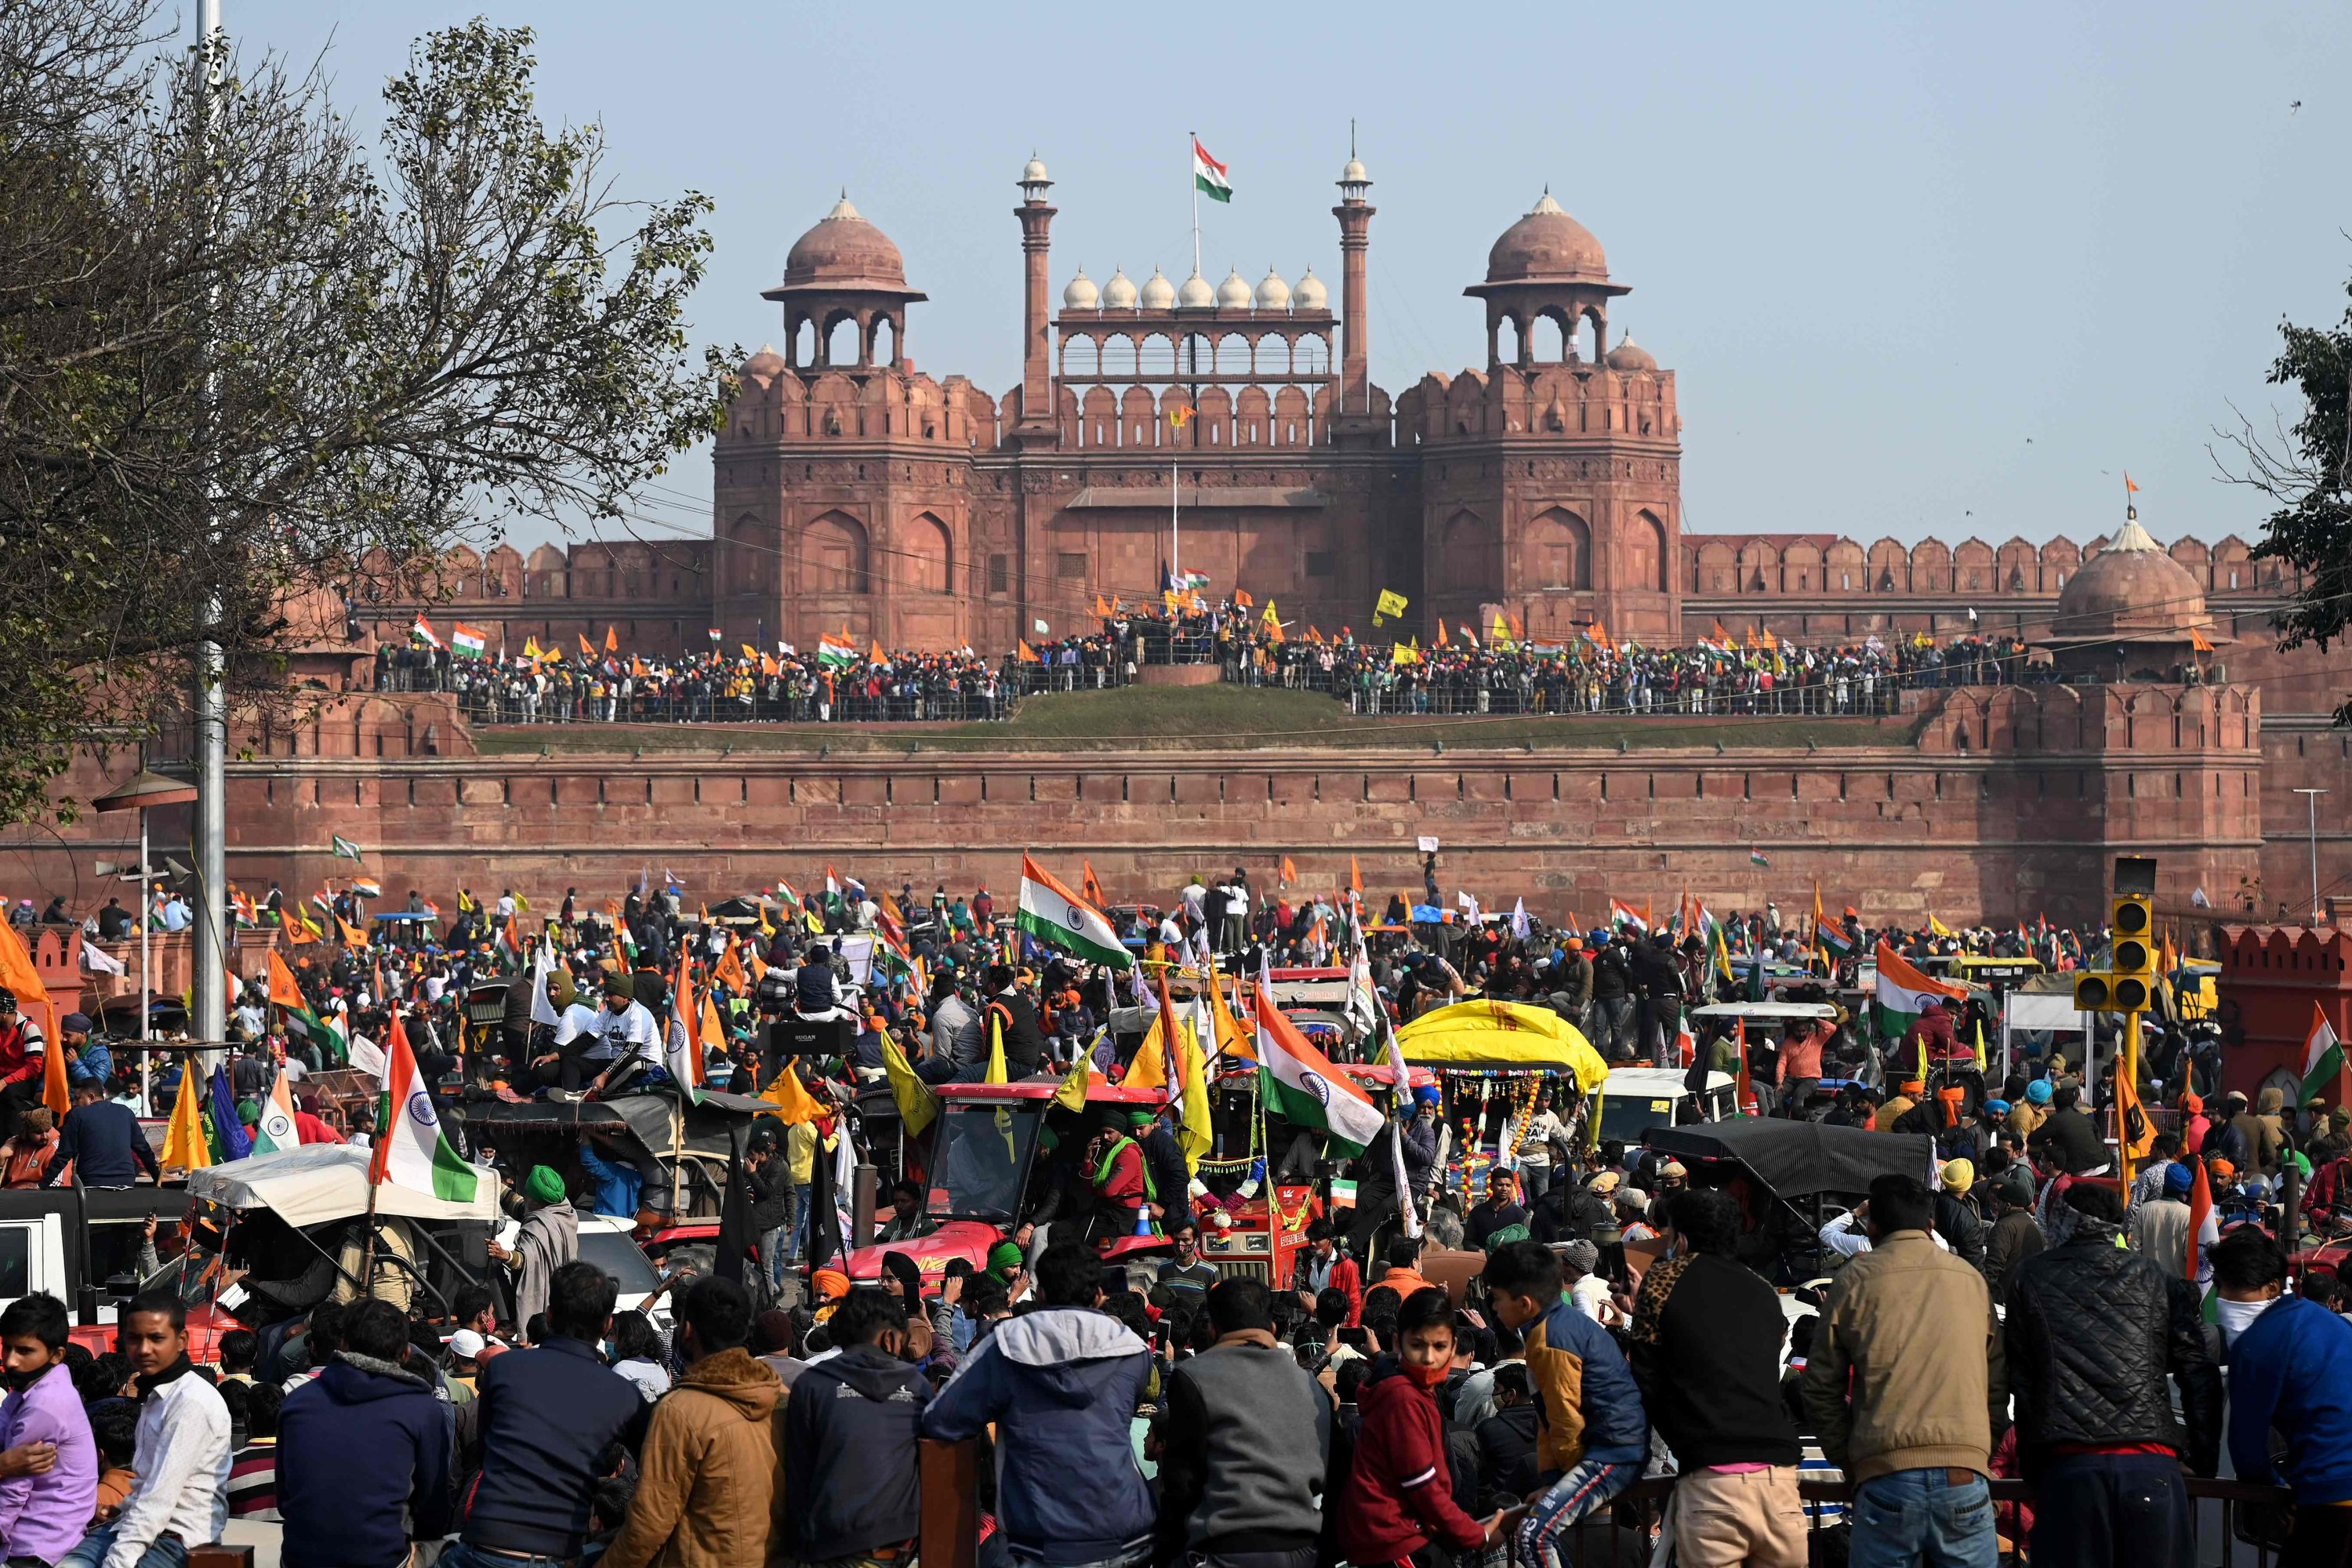 Farmers at the Red Fort as they continue to protest against the Indian government's recent agricultural reforms, New Delhi, India, Jan. 26, 2021. (AFP Photo)